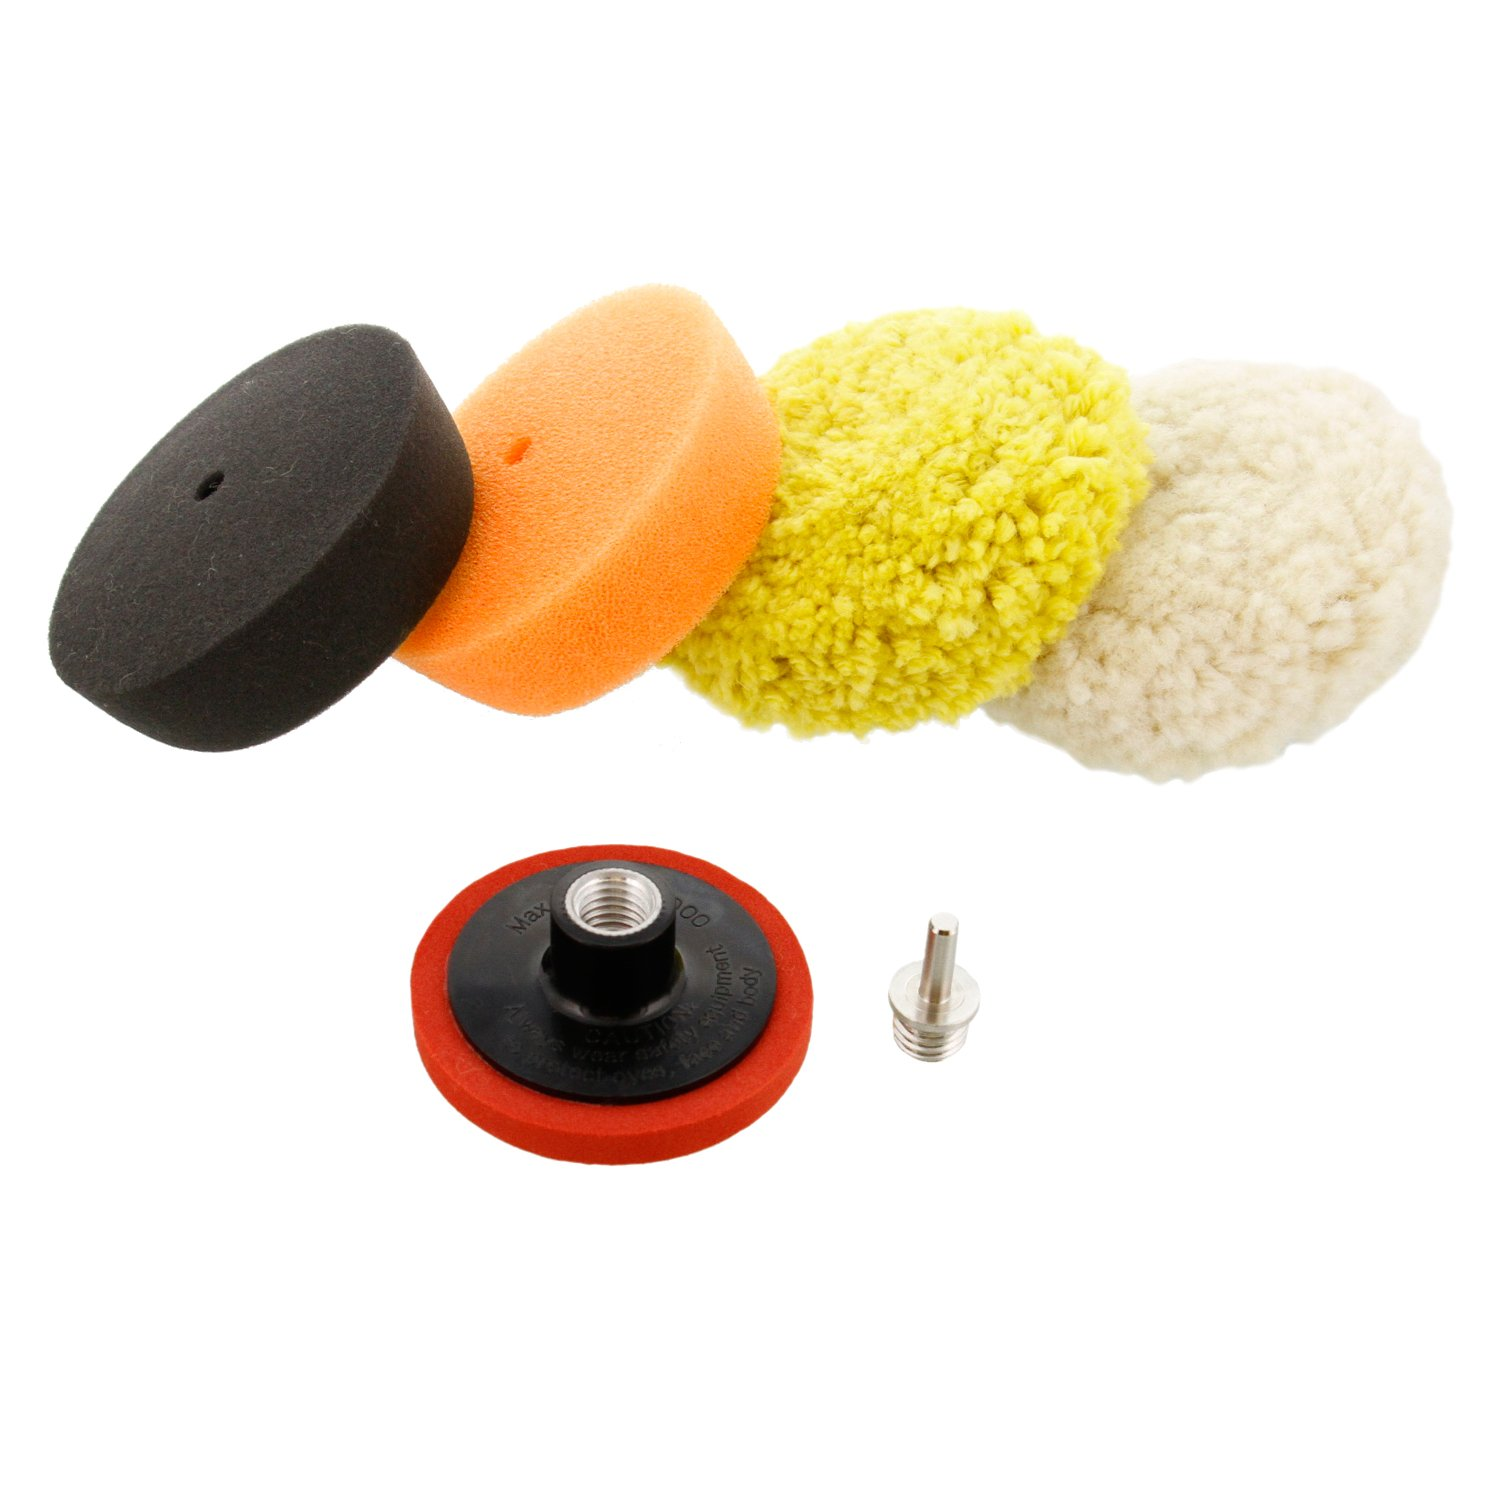 TCP Global 3'' Mini Buffing and Polishing Pad Kit with 4 Pads, Backing Plate, and 1/4'' Drill Adapter